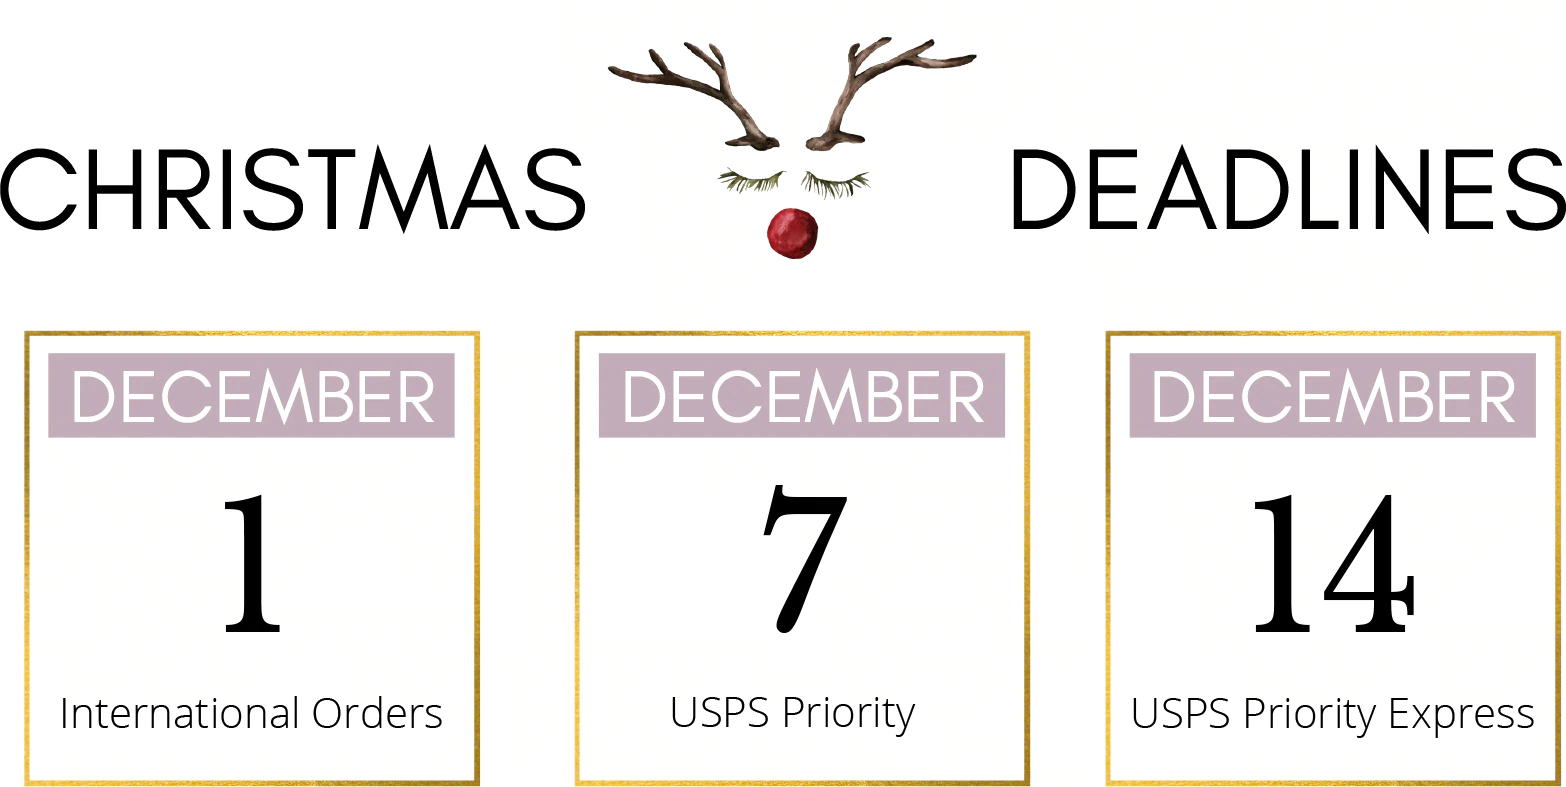 2020 Christmas gift ordering deadlines